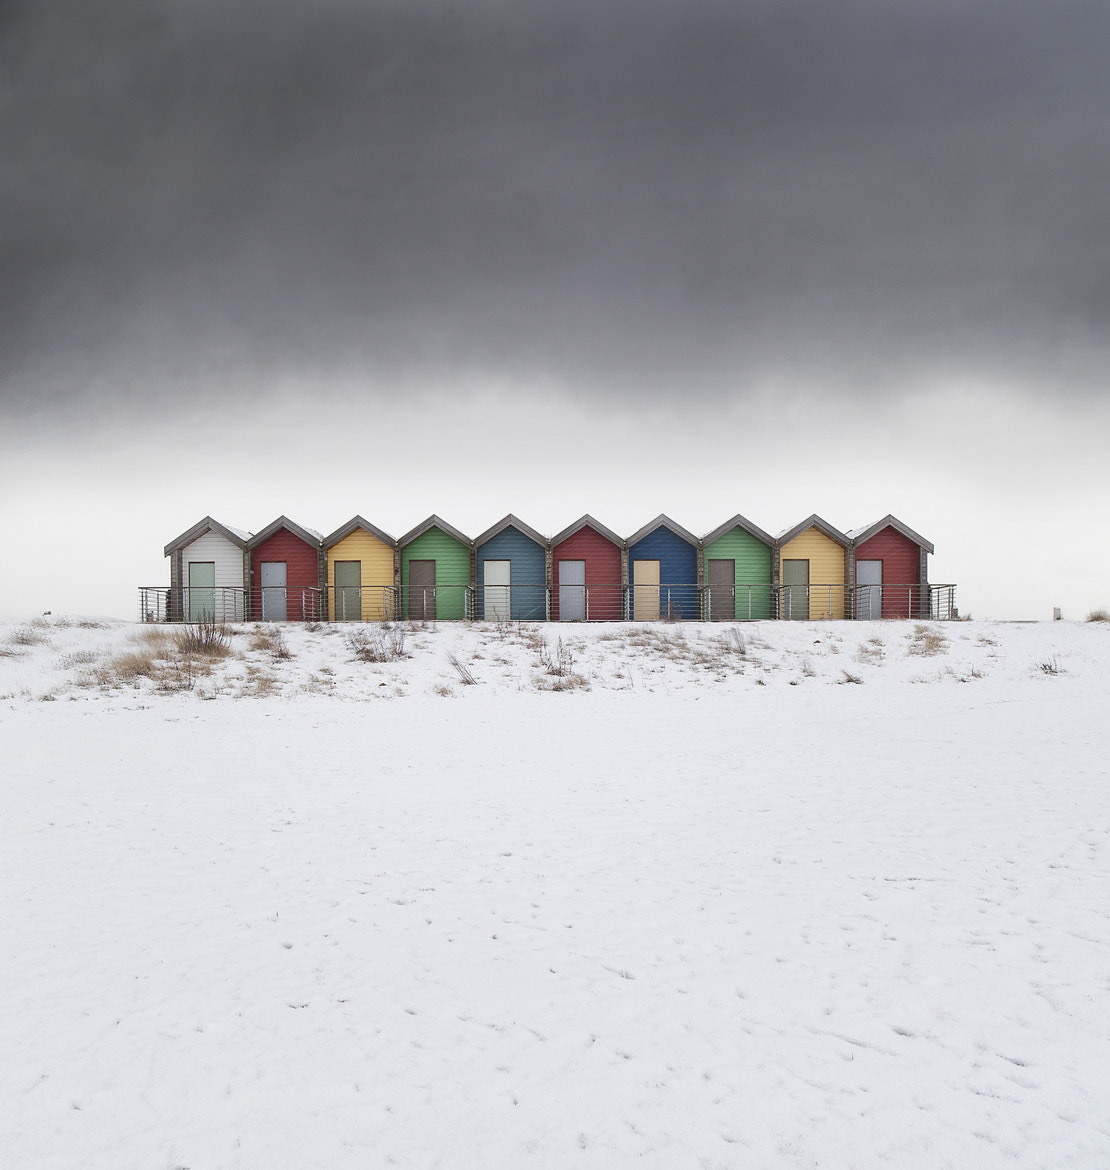 Photograph A Snowy Row by Daniel Hannabuss on 500px